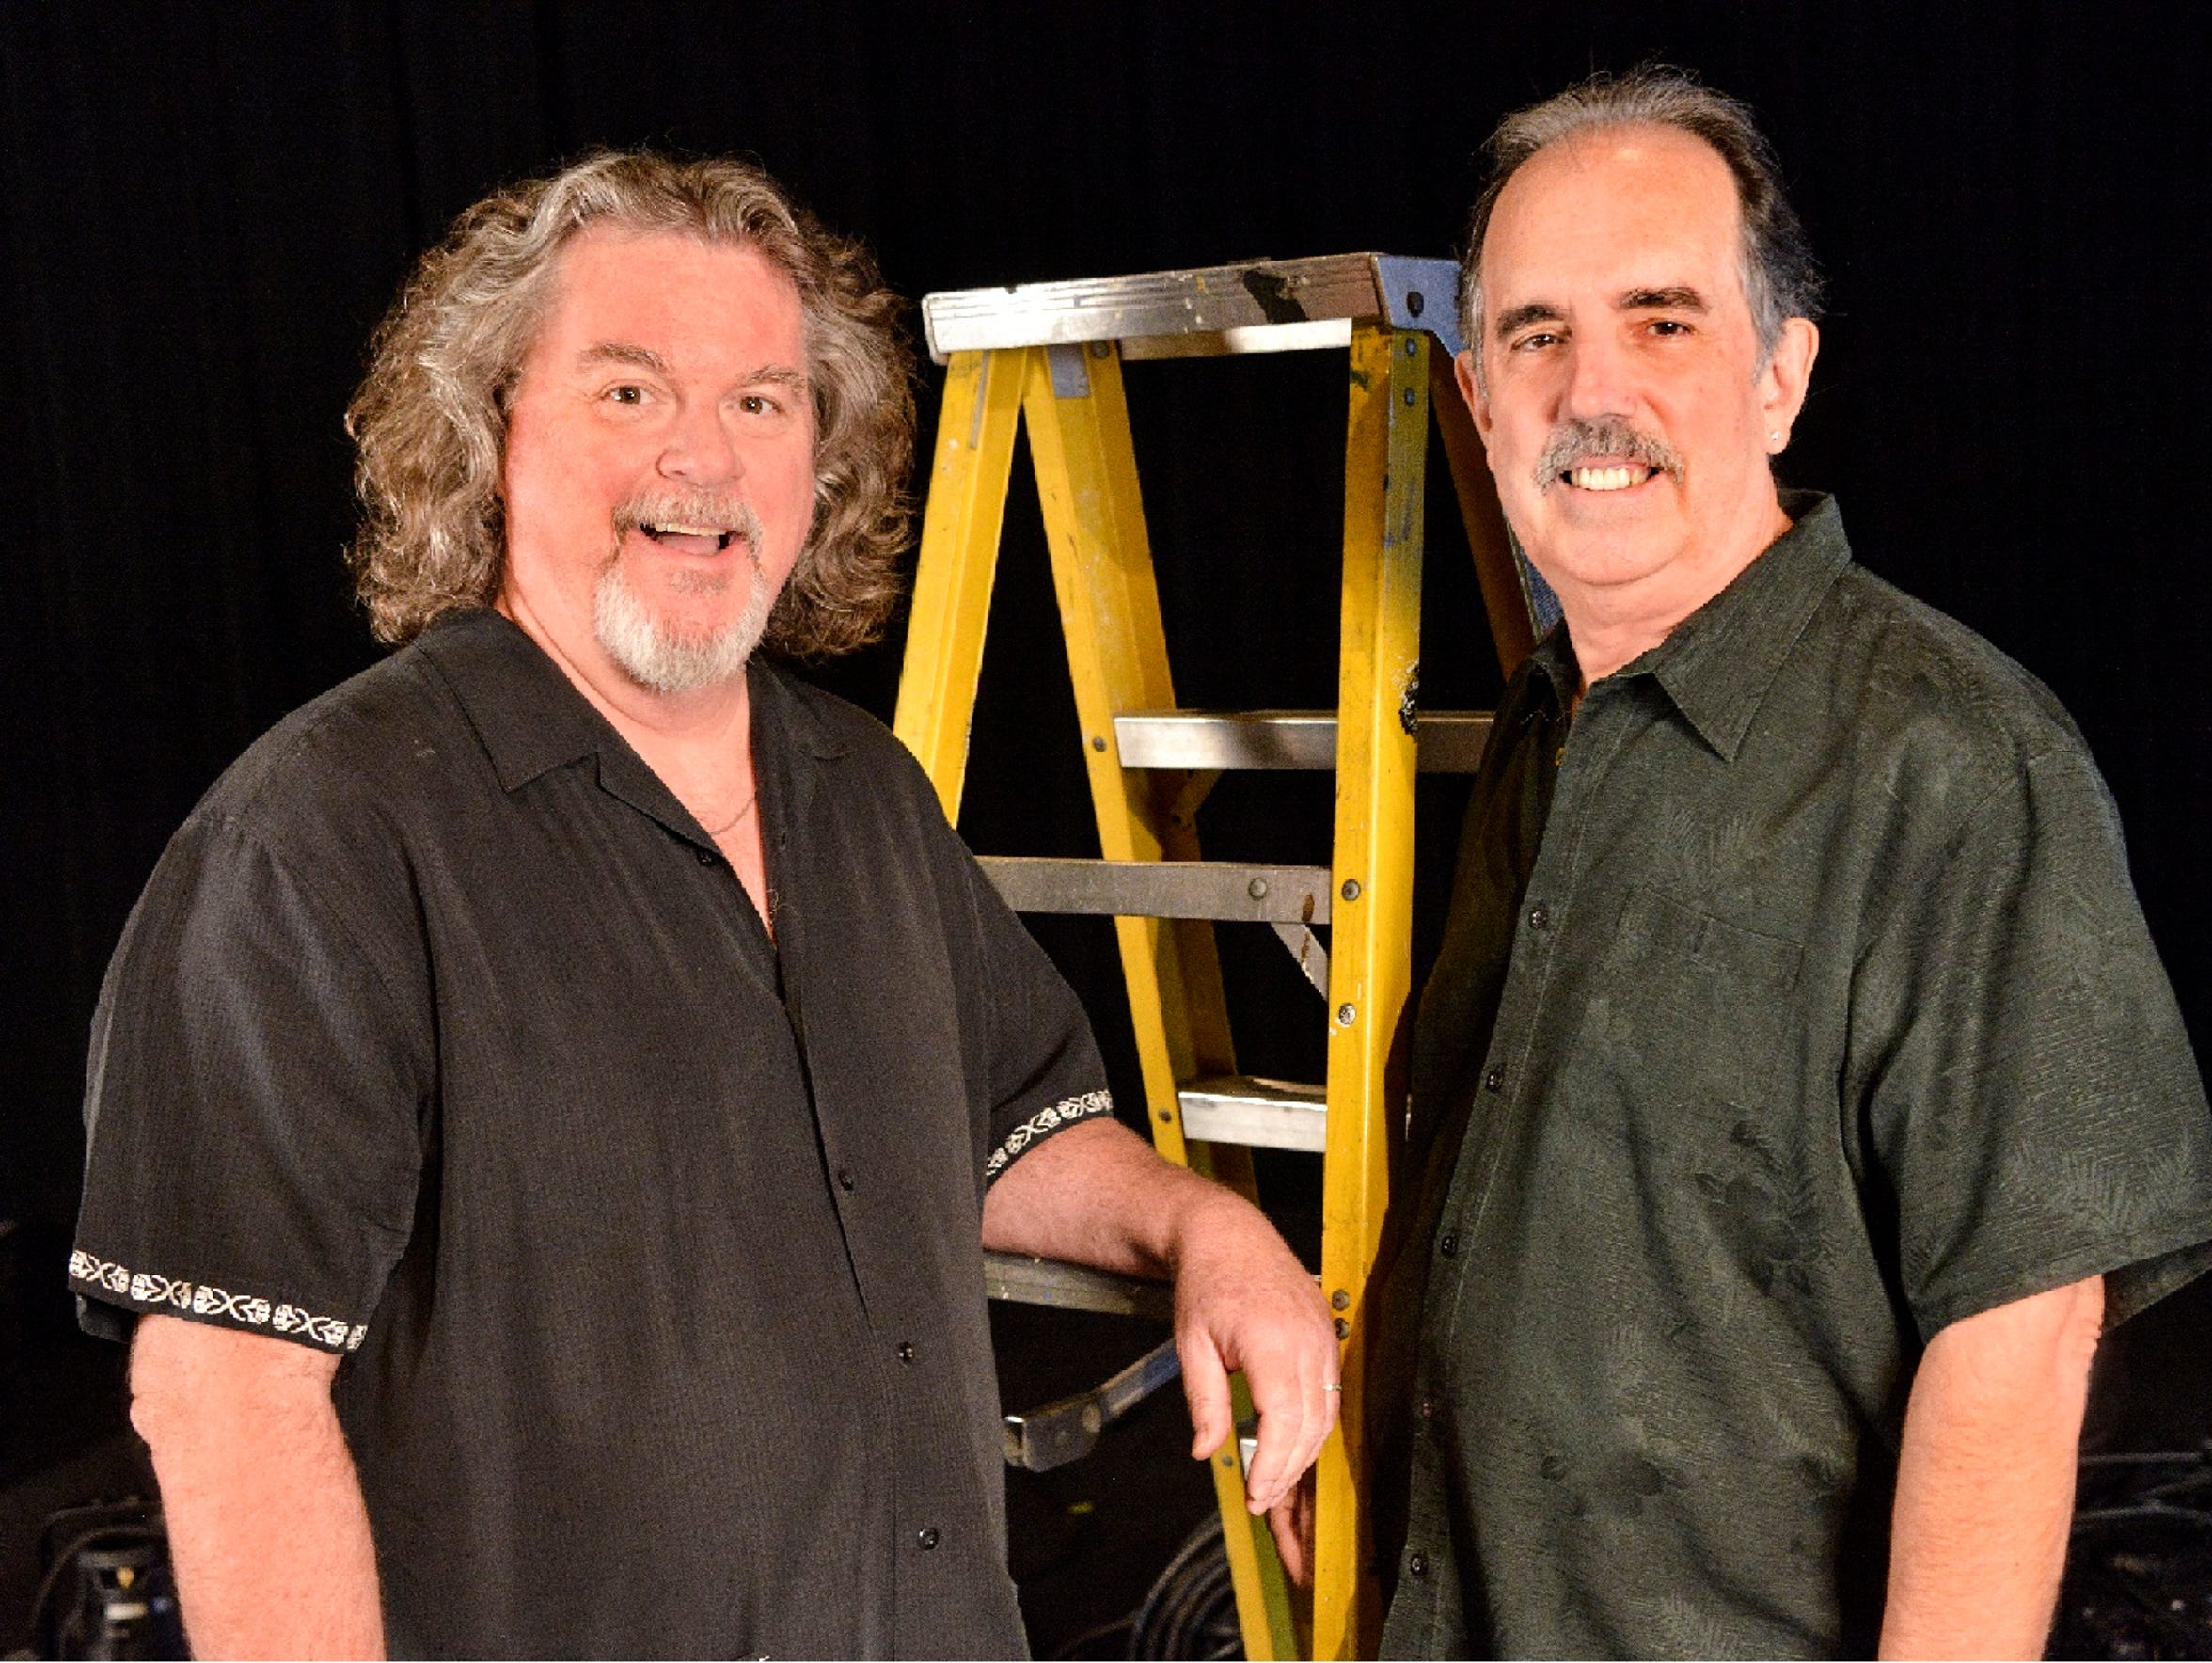 Jim Strait (left) and his producer husband, Paul Taylor, are retiring from the Desert Rose Playhouse in Rancho Mirage this season after six seasons of producing LGBTQ-themed content.